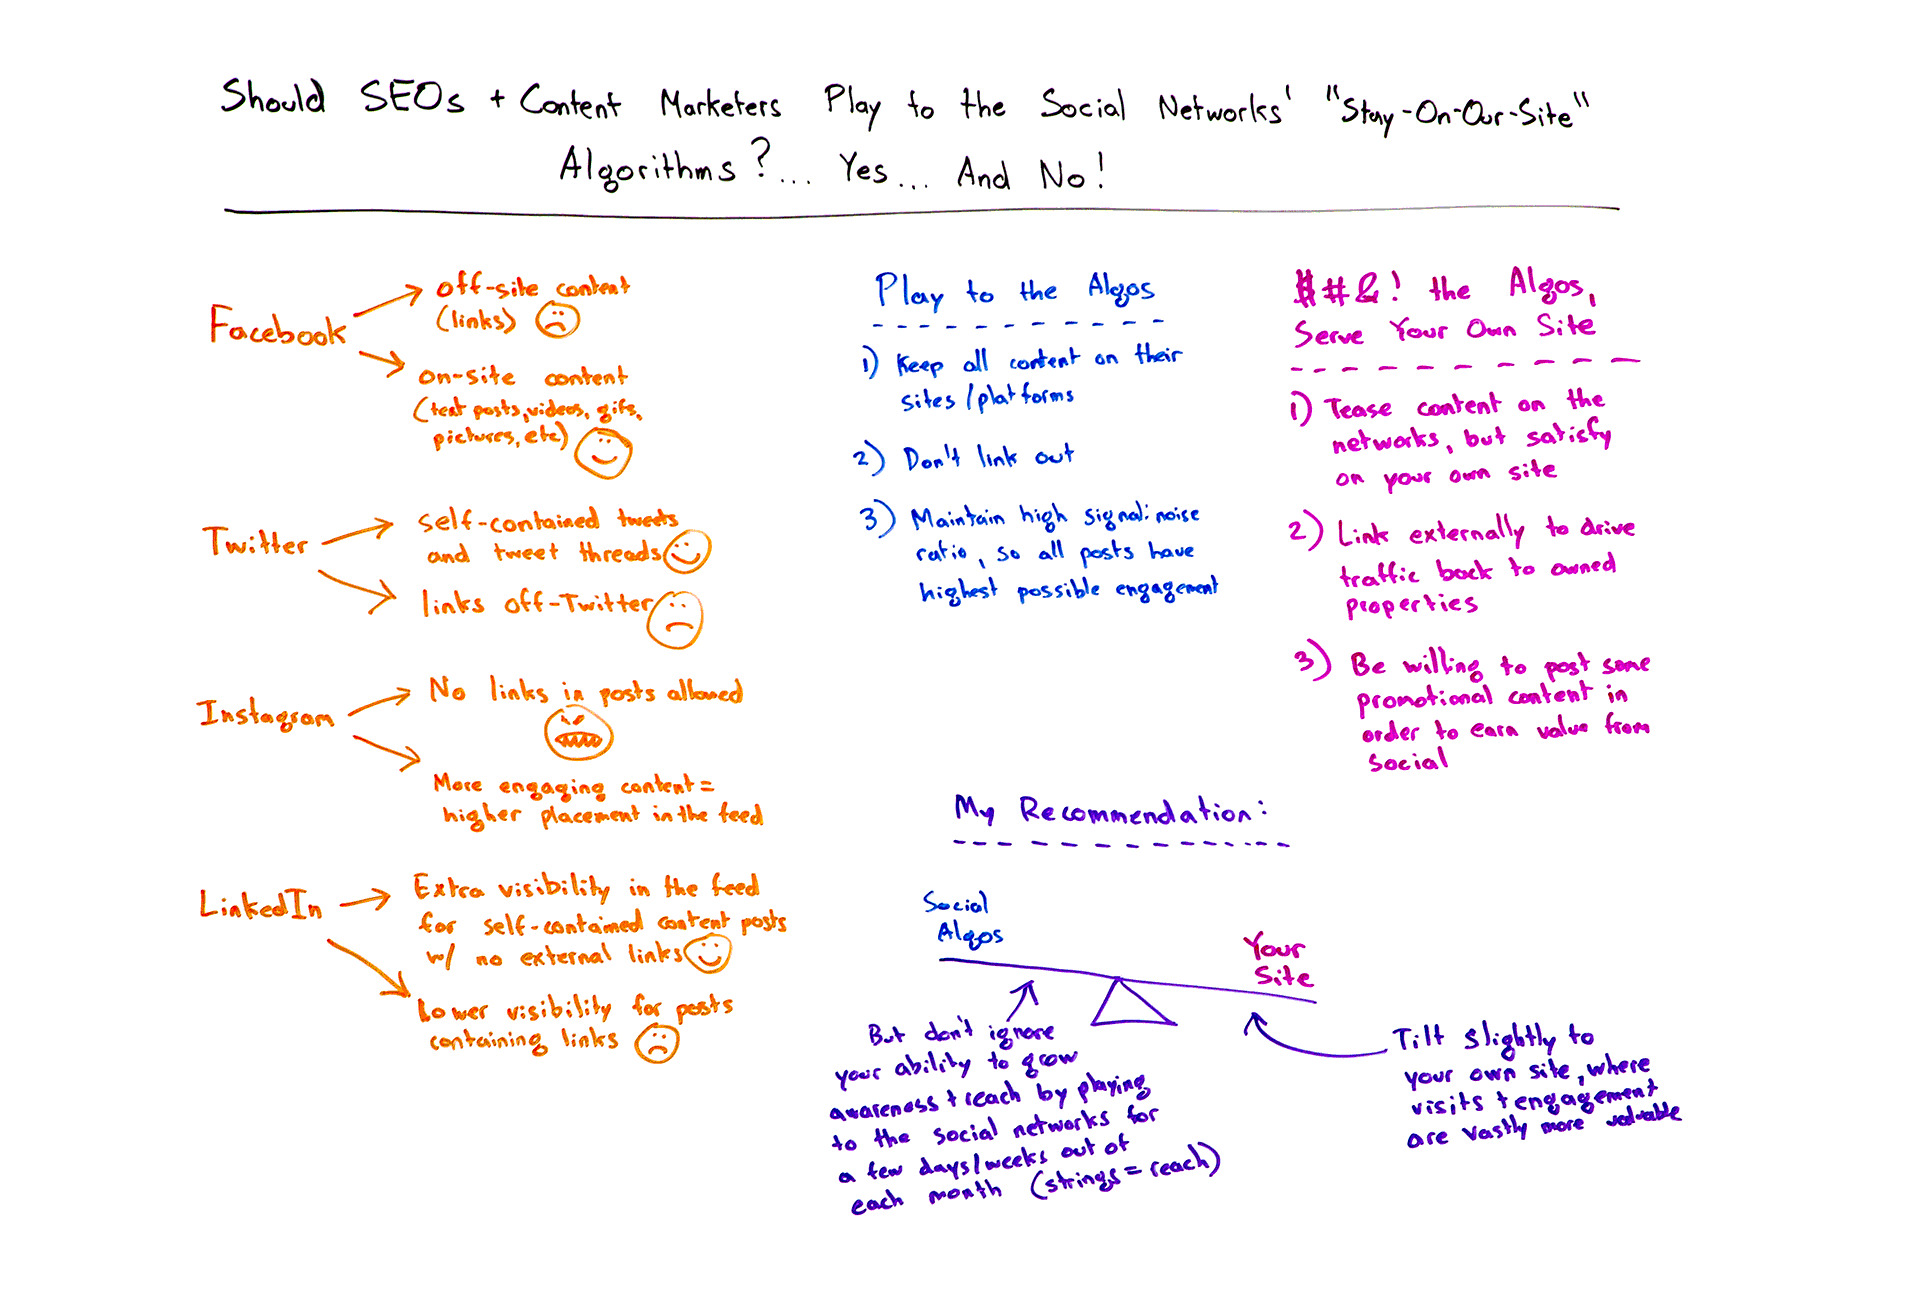 "Should SEOs and content marketers play to the social networks ""stay-on-our-site"" algorithms?"